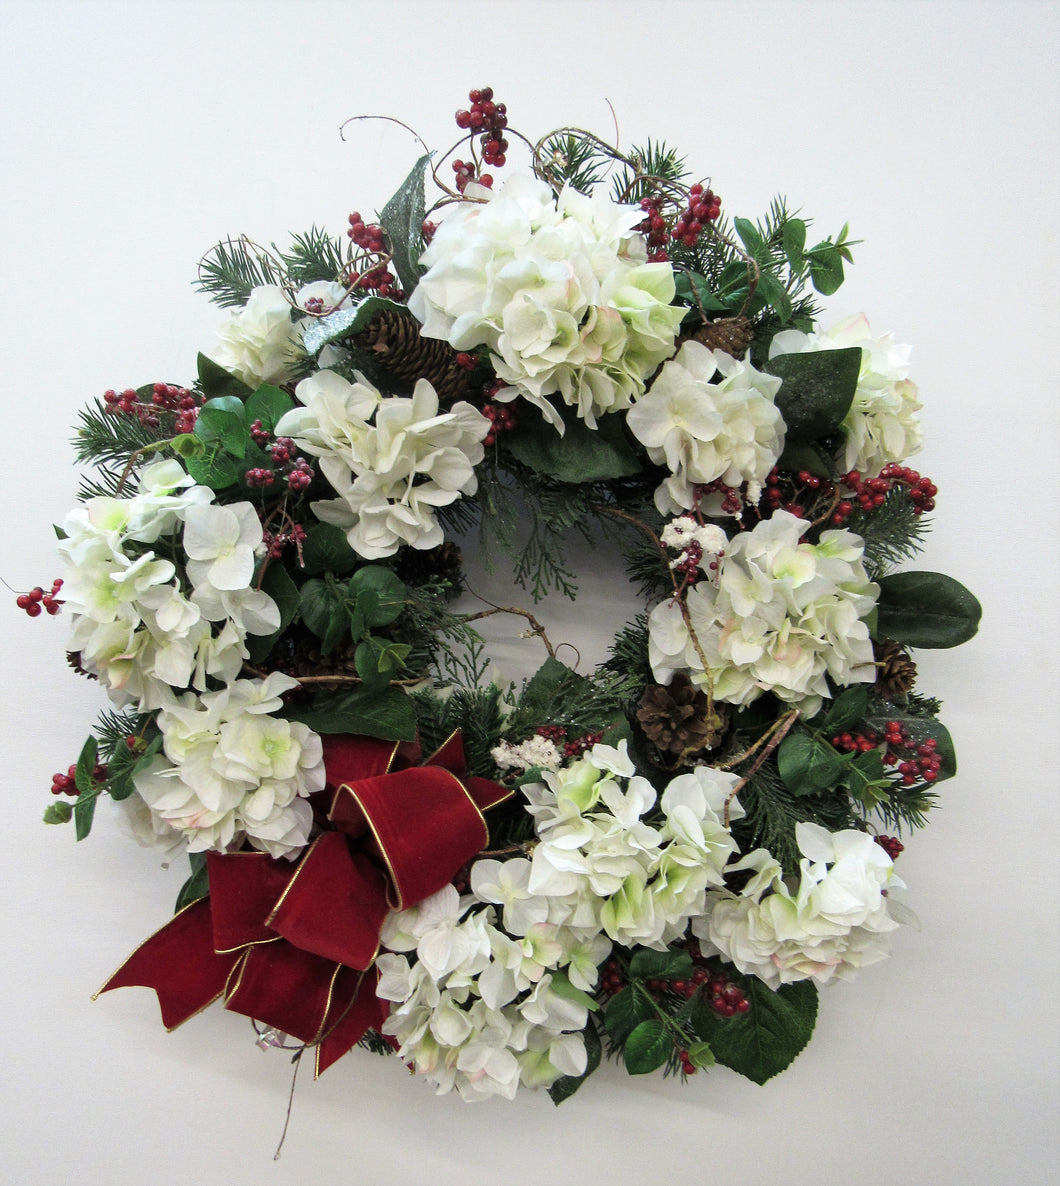 Gallery/Trans32 - April's Garden Wreath